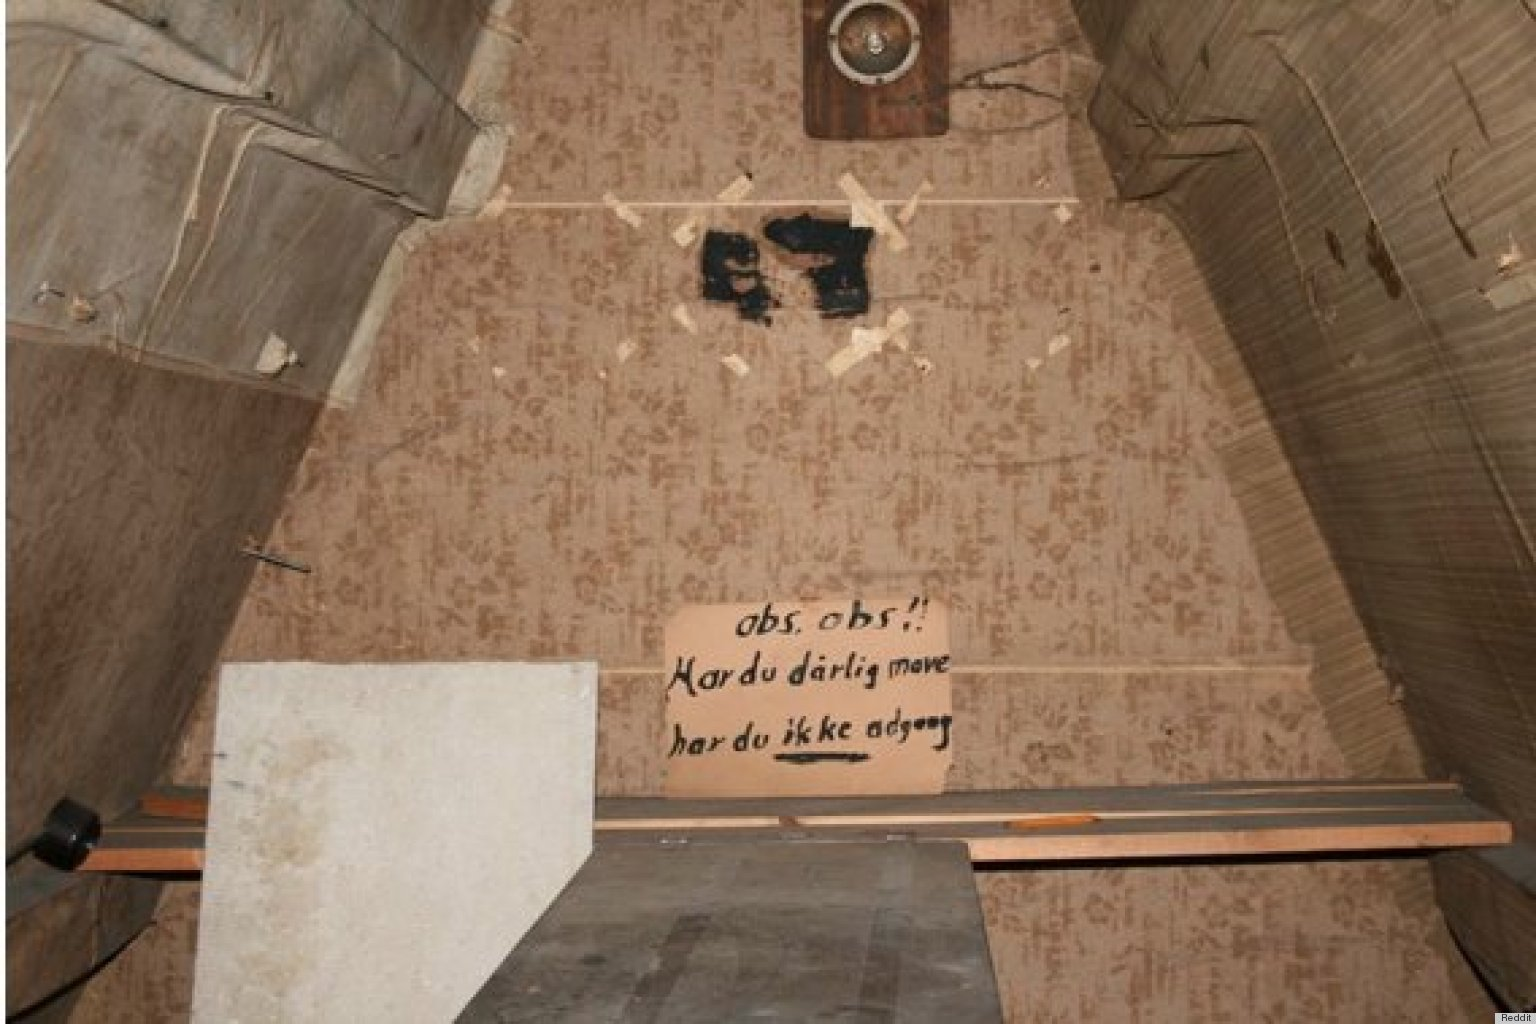 attic access door ideas - Secret Room Possibly From World War II Found In Home In